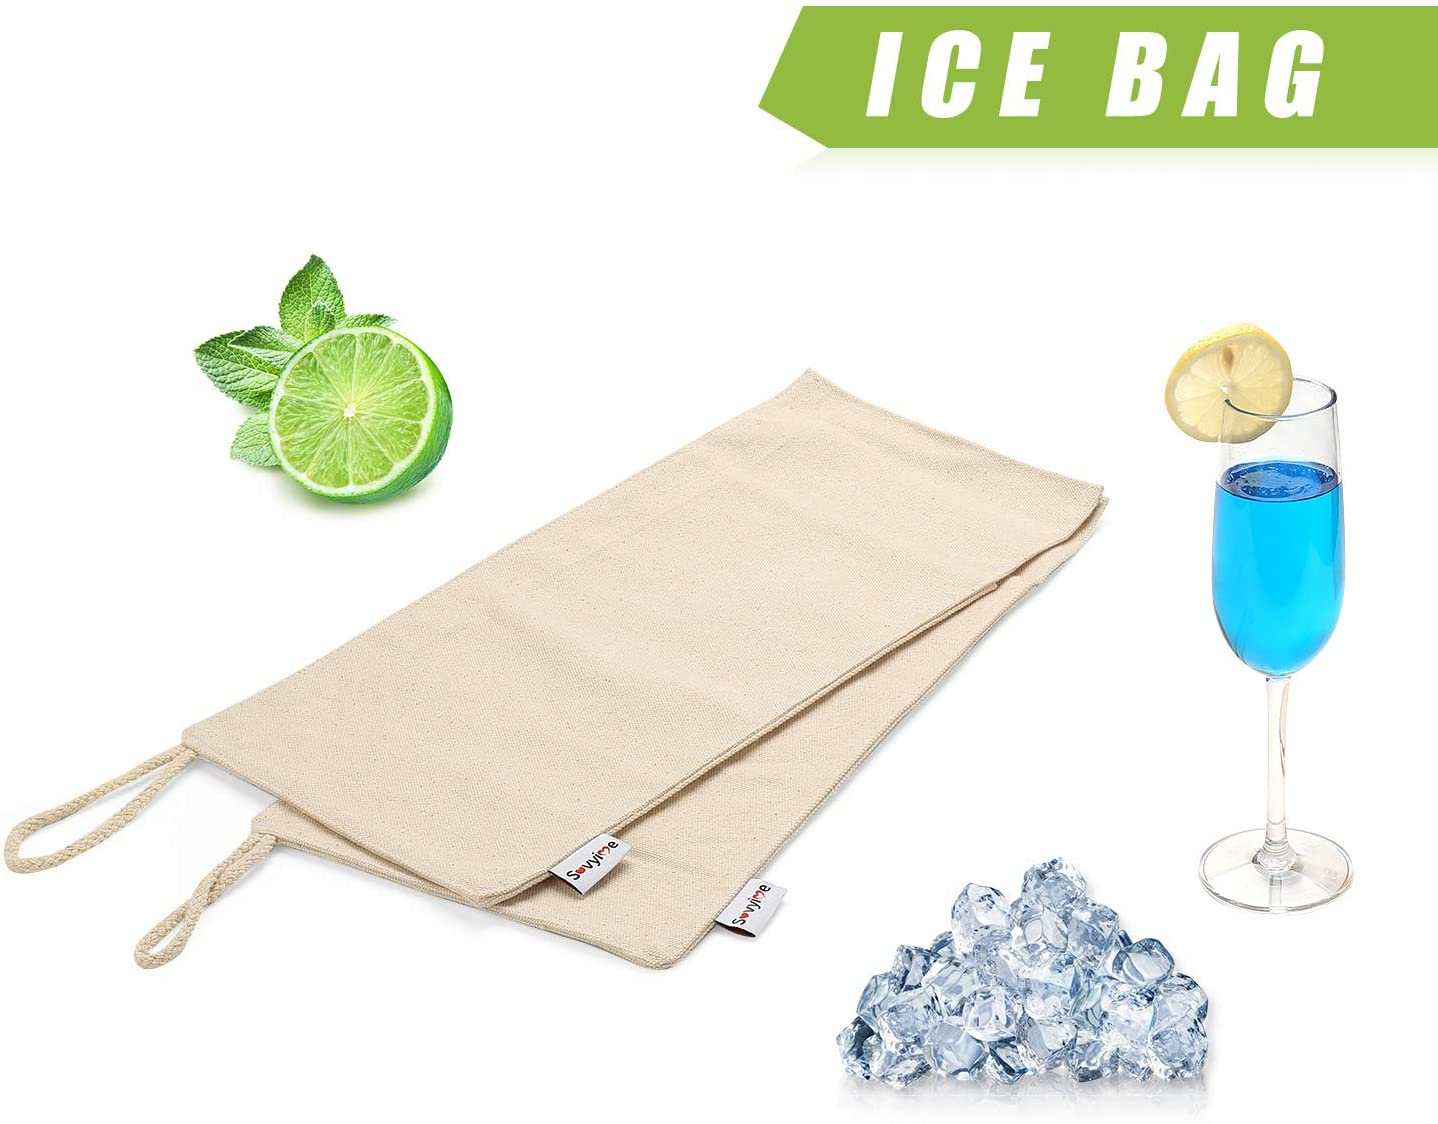 Handmade Reusable Lewis Durable Canvas Ice Bag (8 x 12.5 inch) for Ice Crushing - 2 Packs Beige